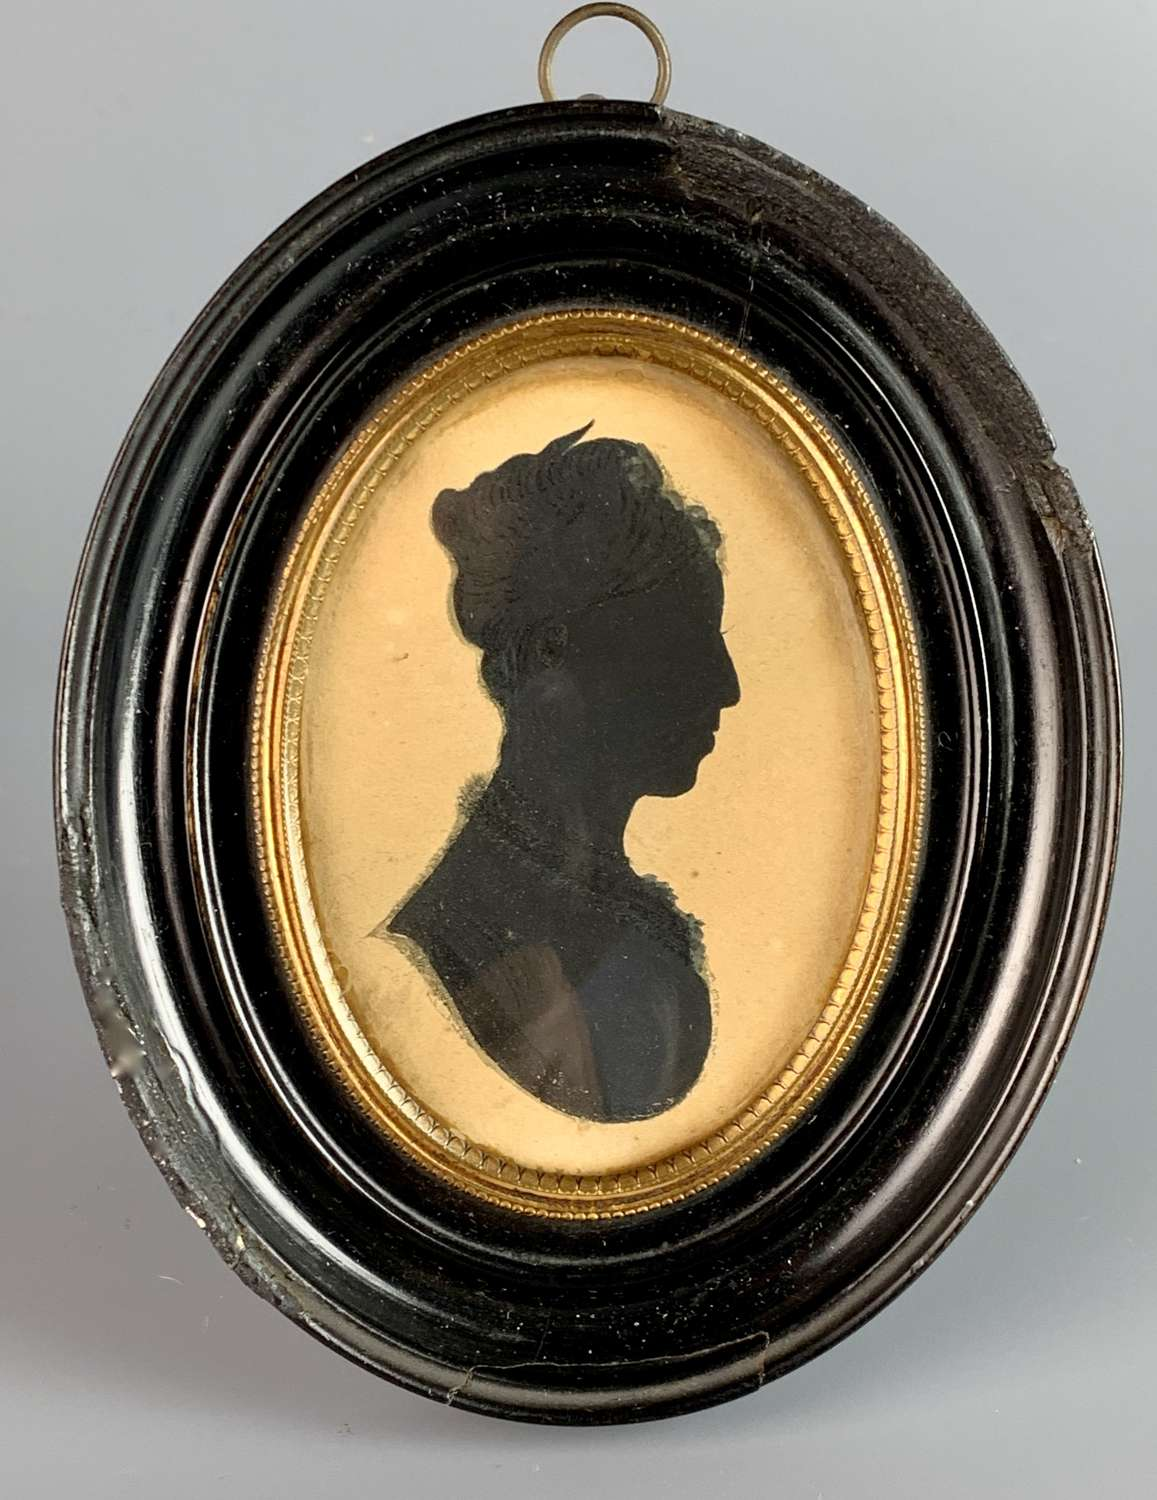 Regency Silhouette of a Lady in an Oval Strut Frame